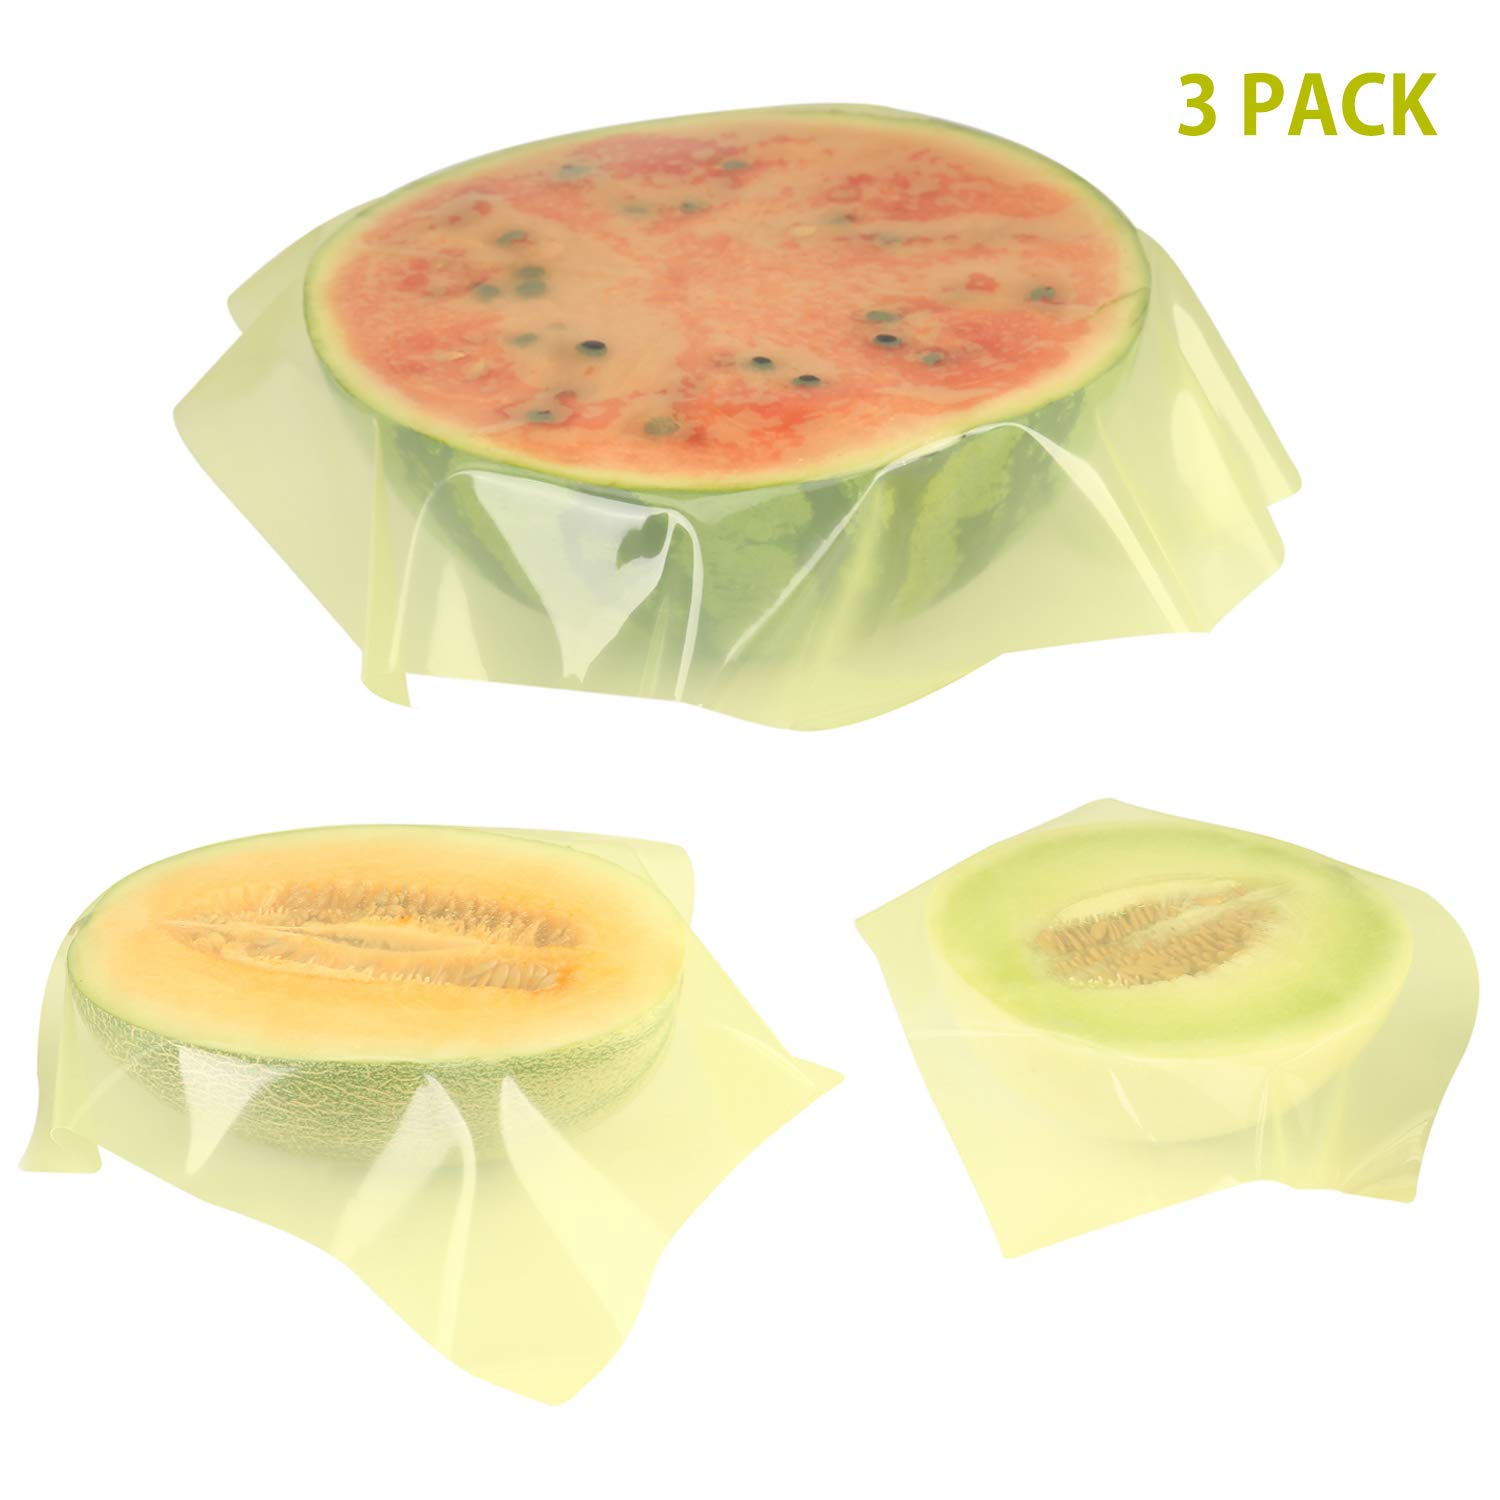 TOURIT Silicone Food Wraps 3 Pcs Eco-Friendly Reusable Food Wraps Sustainable Plastic Free Food Storage for Vegetable Fruit Snack Lunch 3 Sizes (S, M, L)